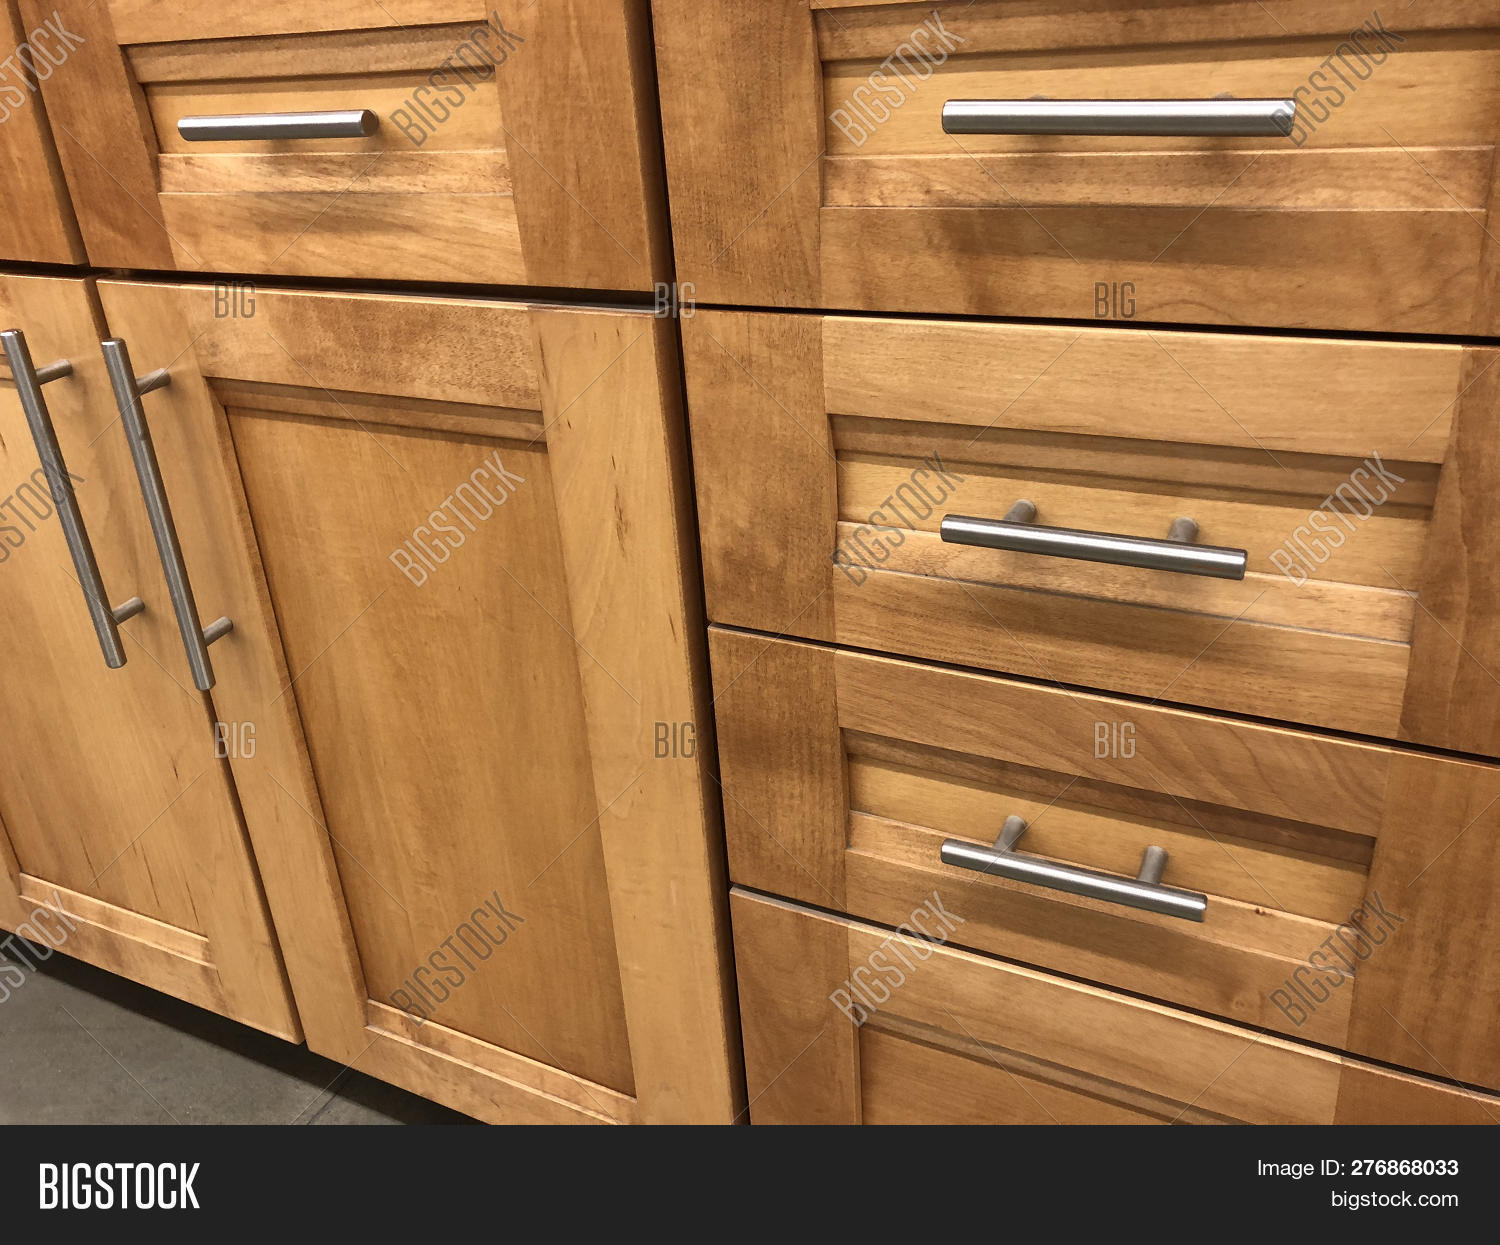 Chrome Handles For Kitchen Cabinets Wood Kitchen Cabinets Image Photo Free Trial Bigstock